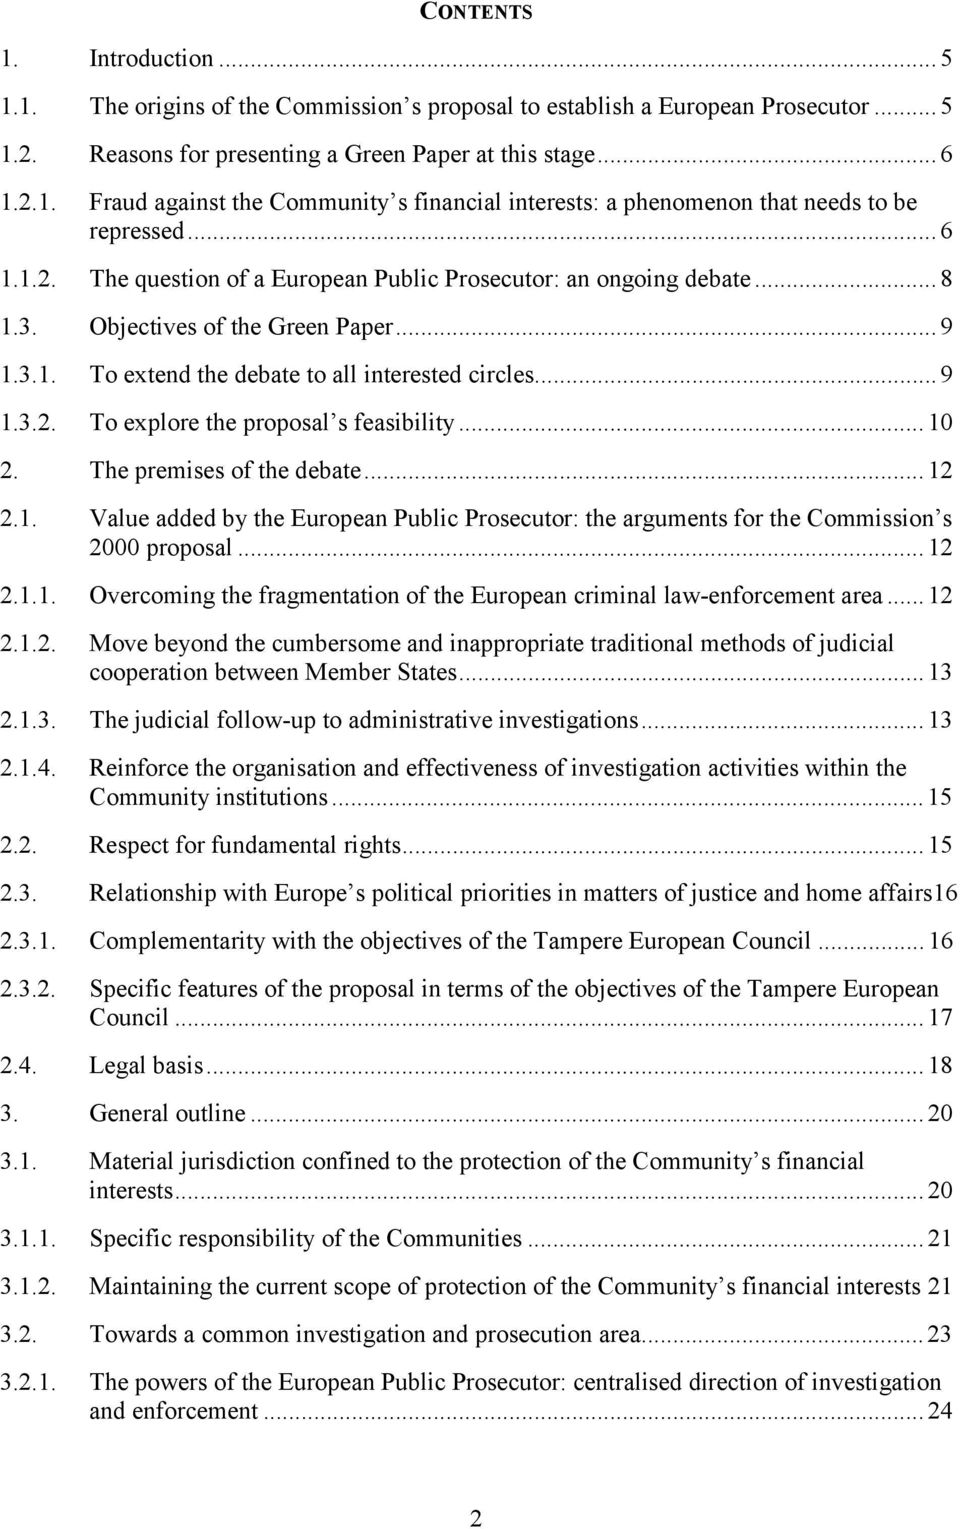 .. 10 2. The premises of the debate... 12 2.1. Value added by the European Public Prosecutor: the arguments for the Commission s 2000 proposal... 12 2.1.1. Overcoming the fragmentation of the European criminal law-enforcement area.